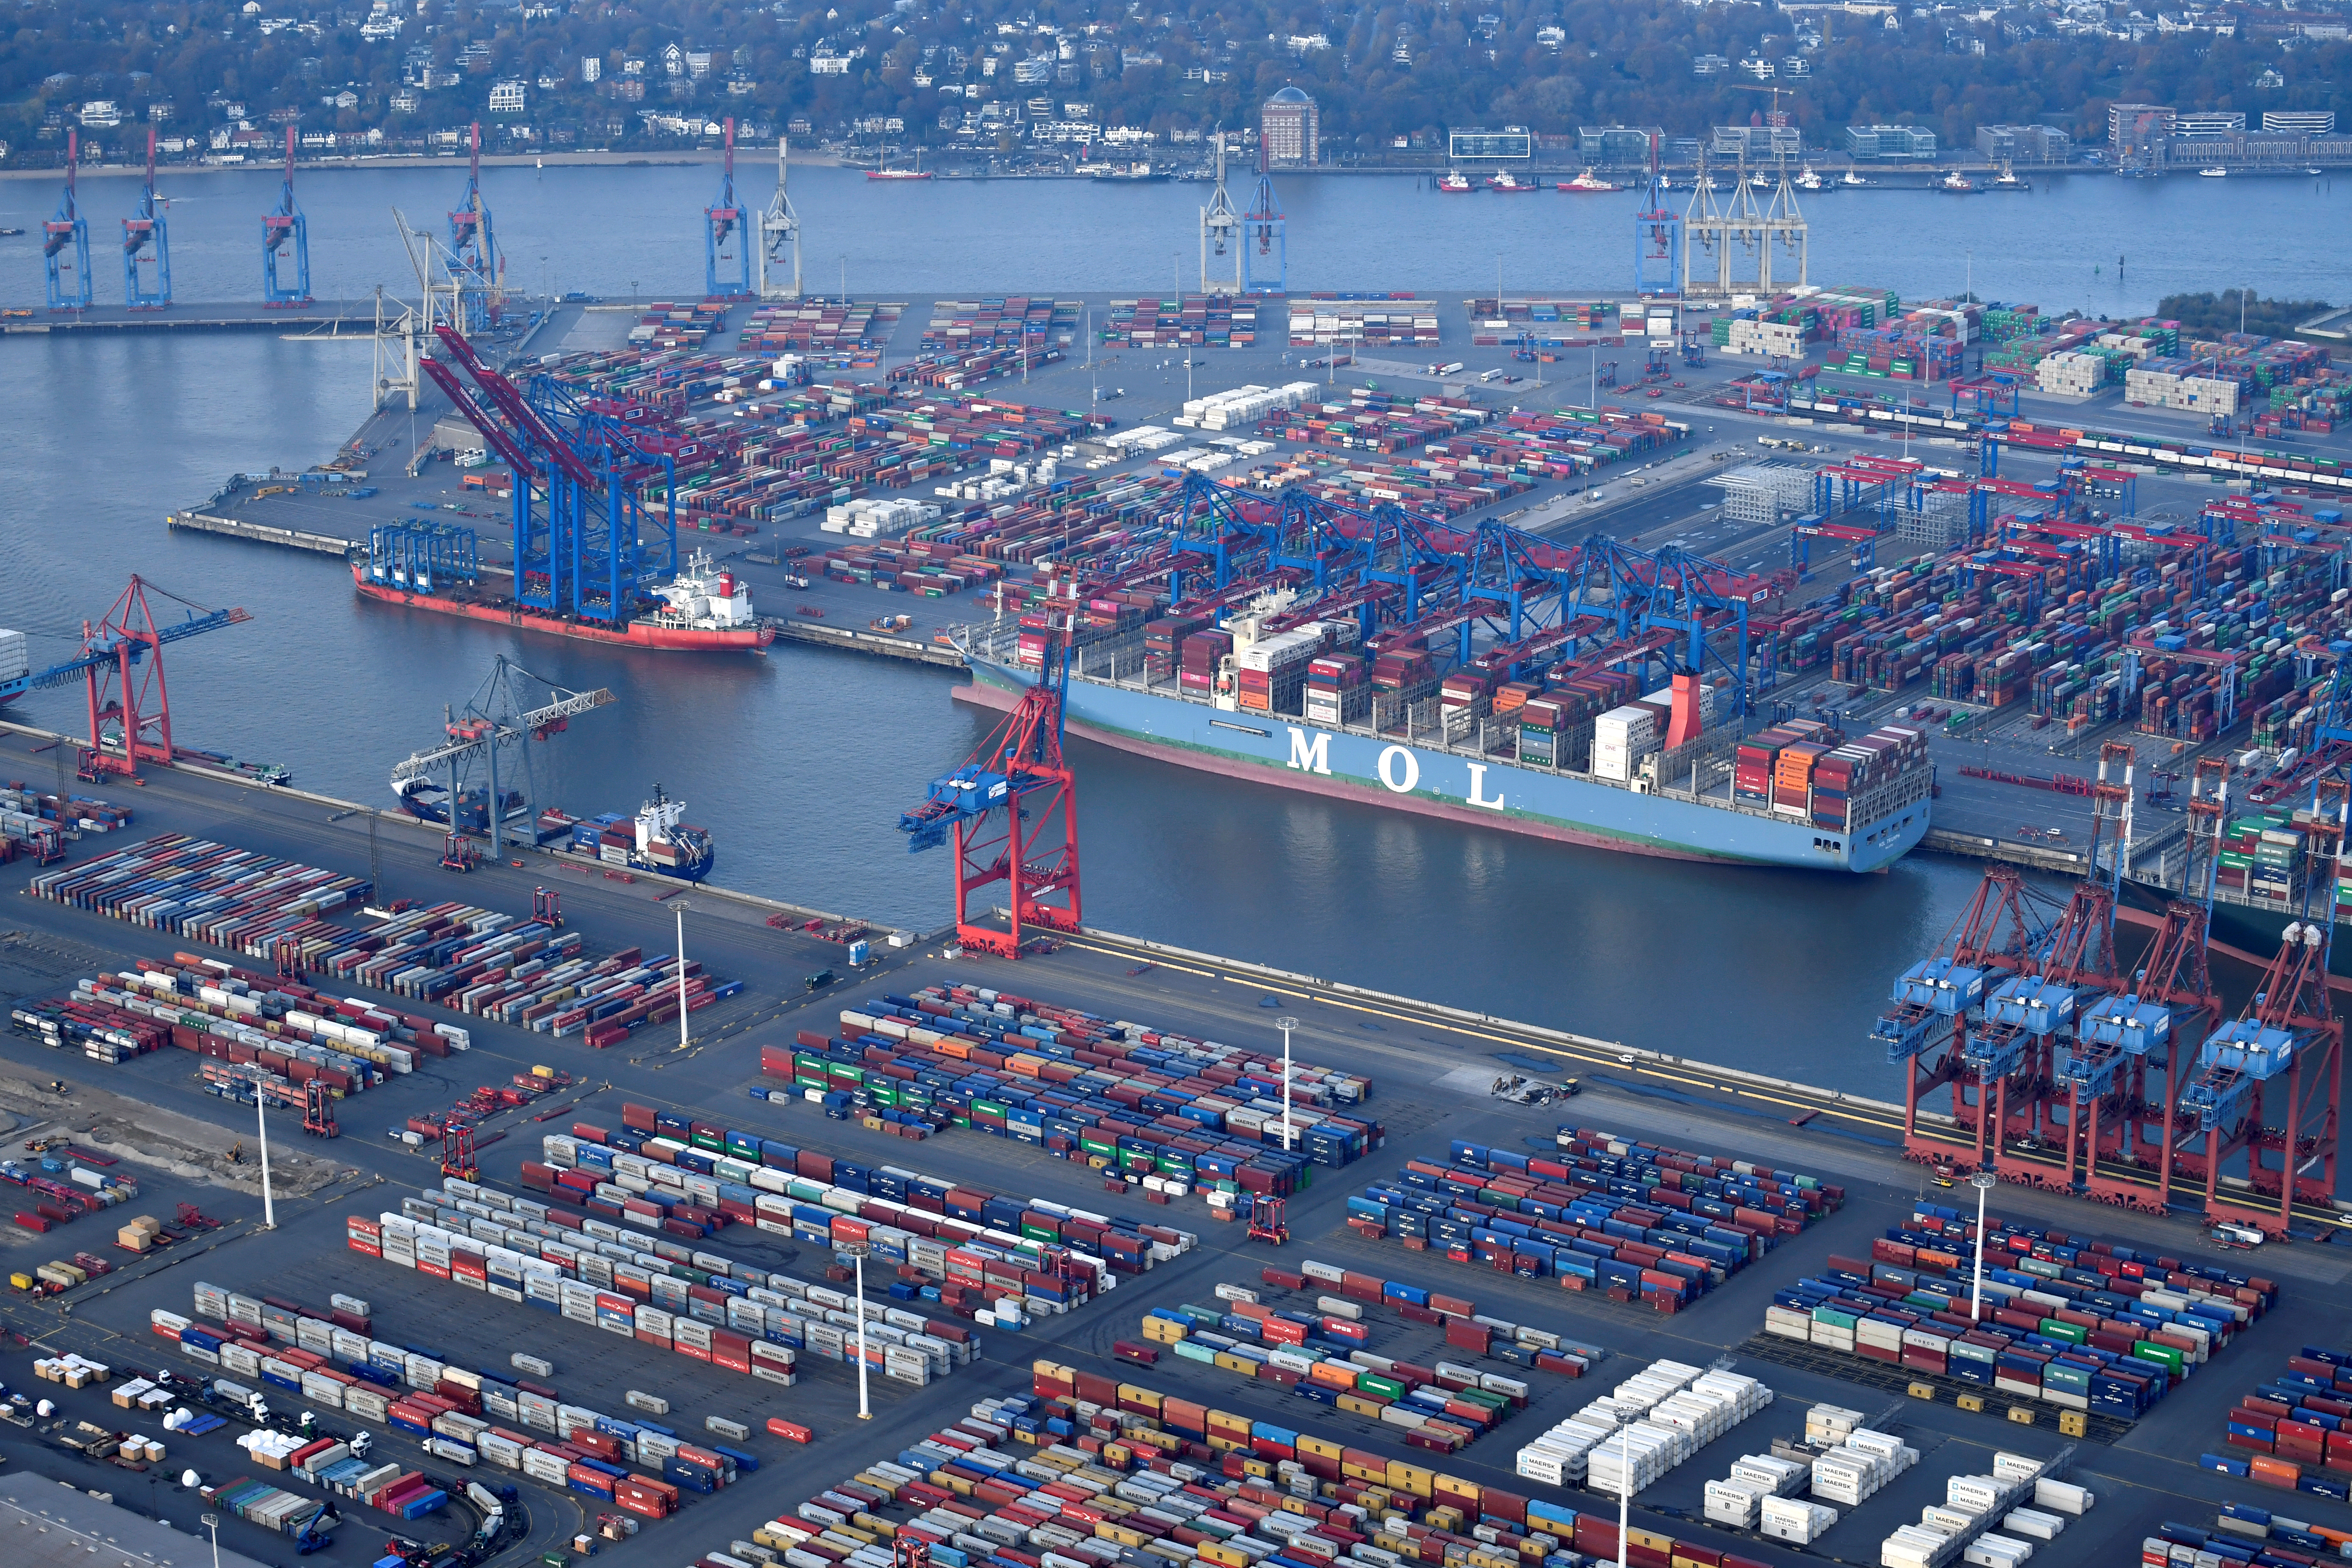 hambourg-port-allemagne-croissance-exportations-containers 20200825103728